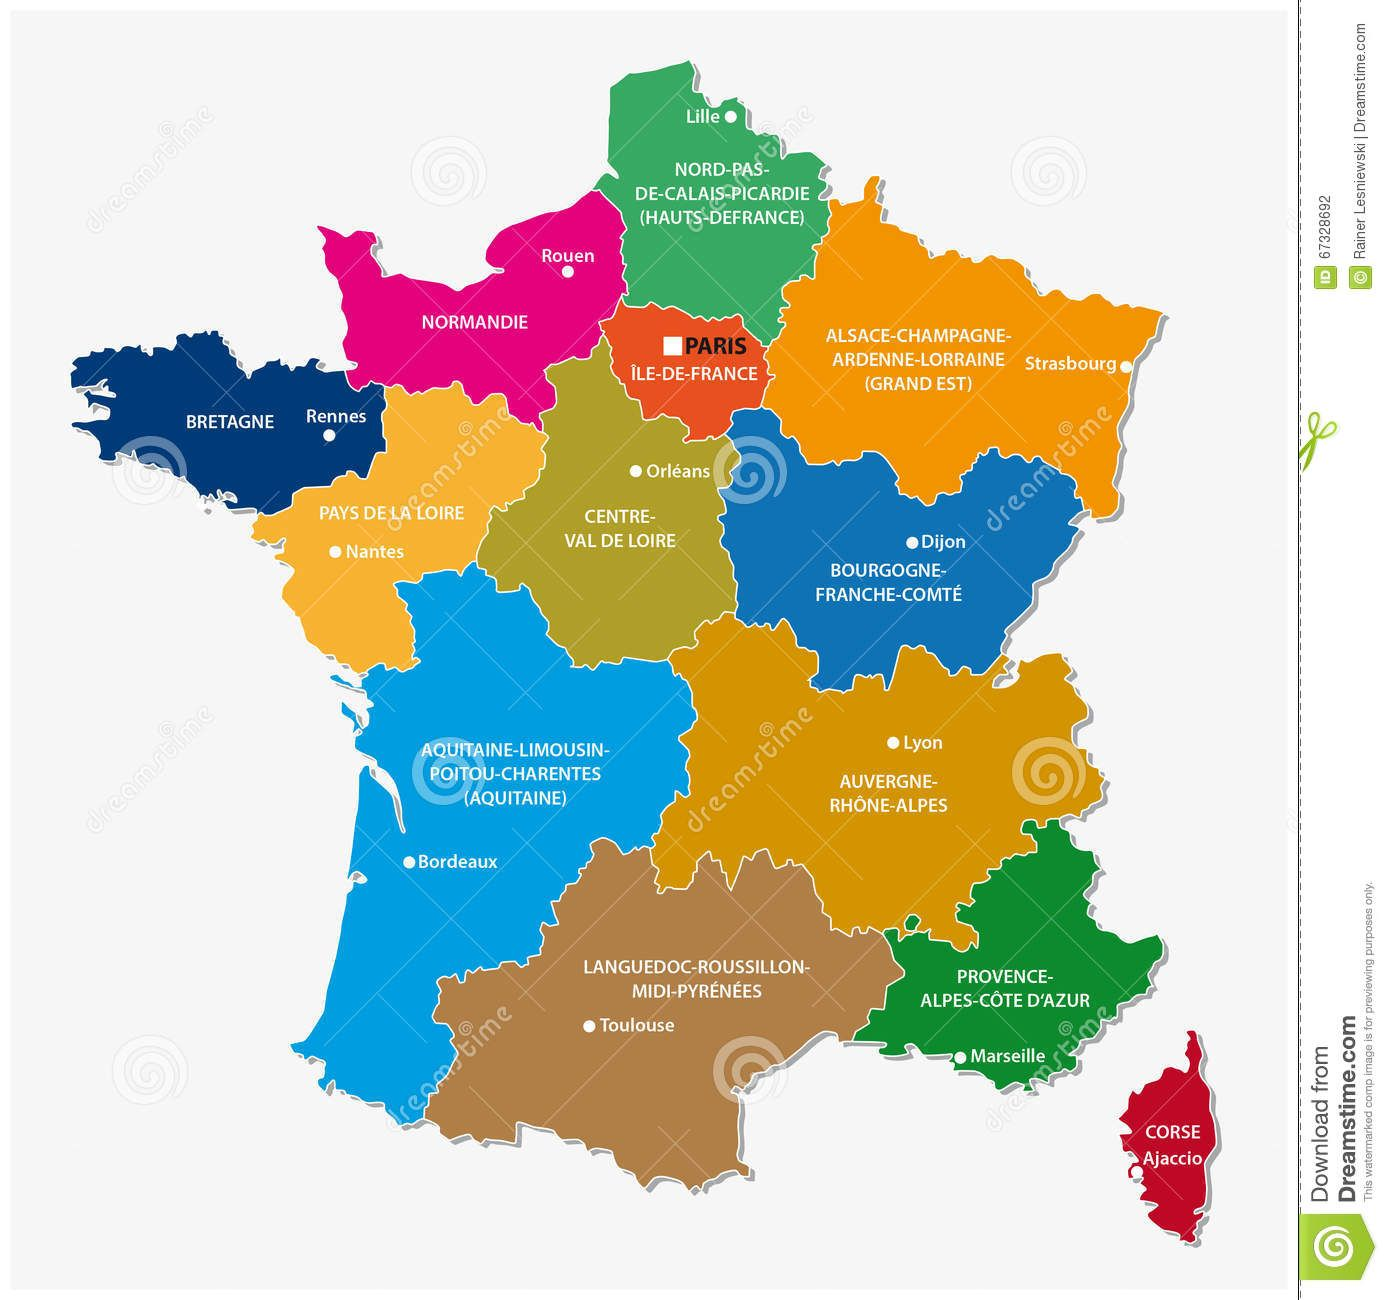 Pin by laura bazilecsm on maps pinterest explore map of france la france and more gumiabroncs Choice Image